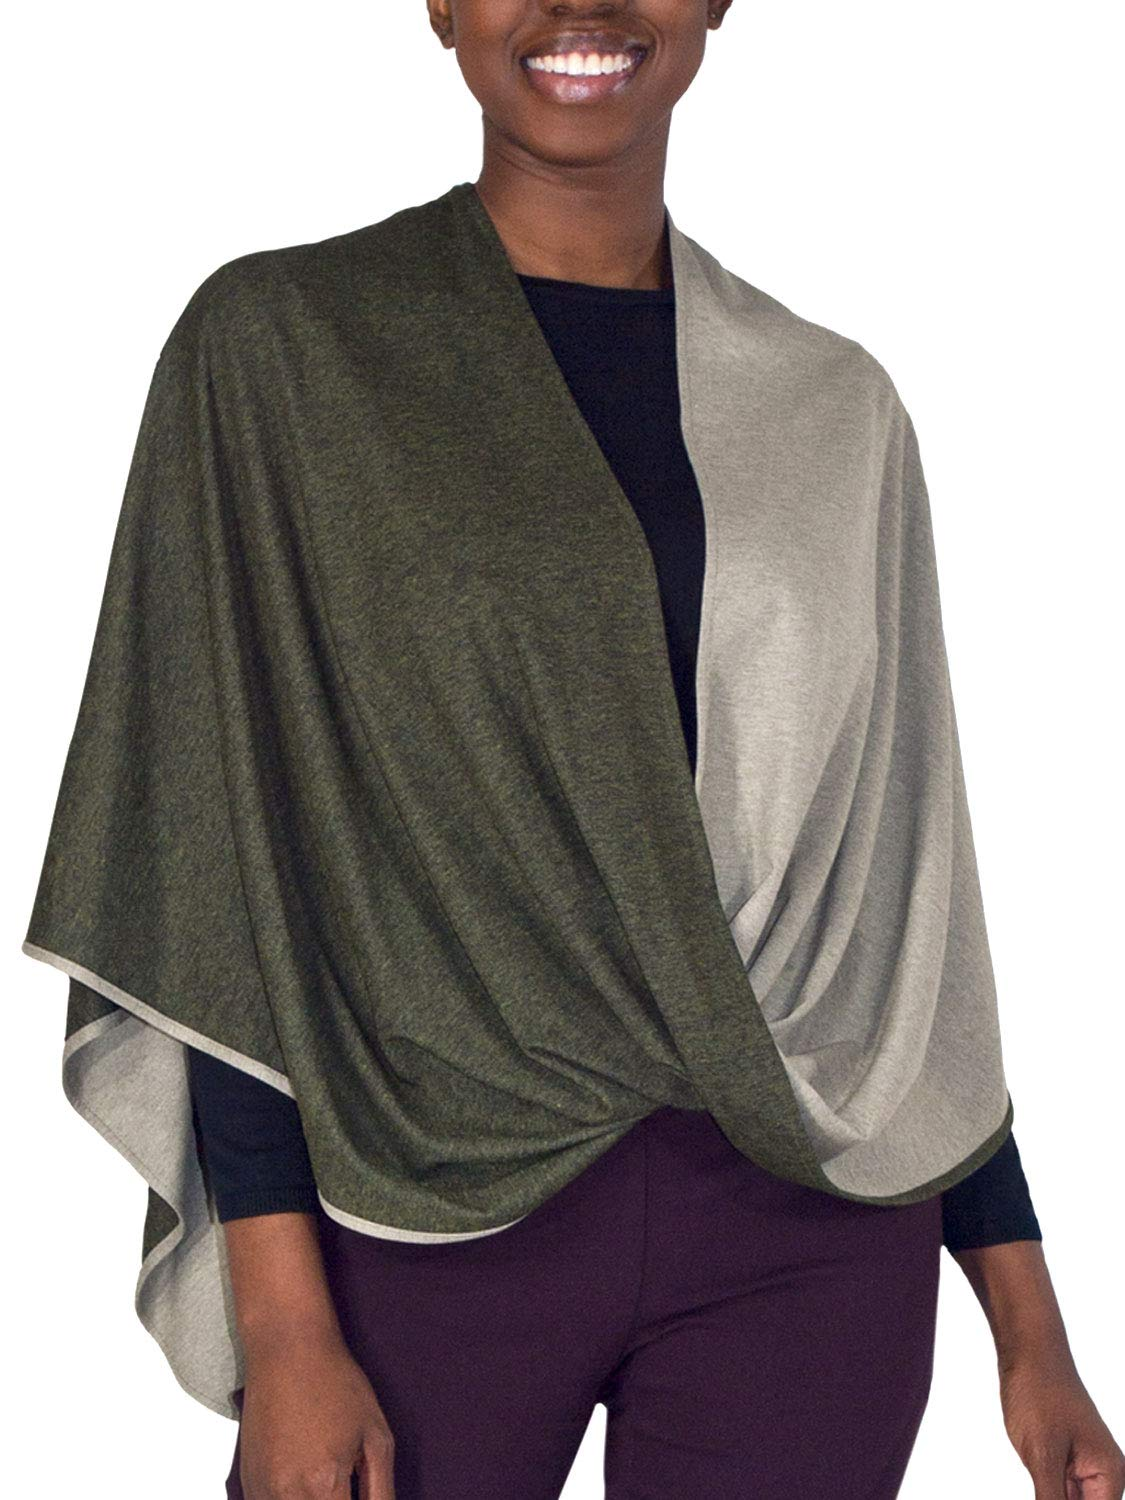 Beryl Infinity Shawl and Scarf - Luxuriously Soft 2-Tone Sage and Green Shawl from Erin Draper. Made in USA. (Medium Length)